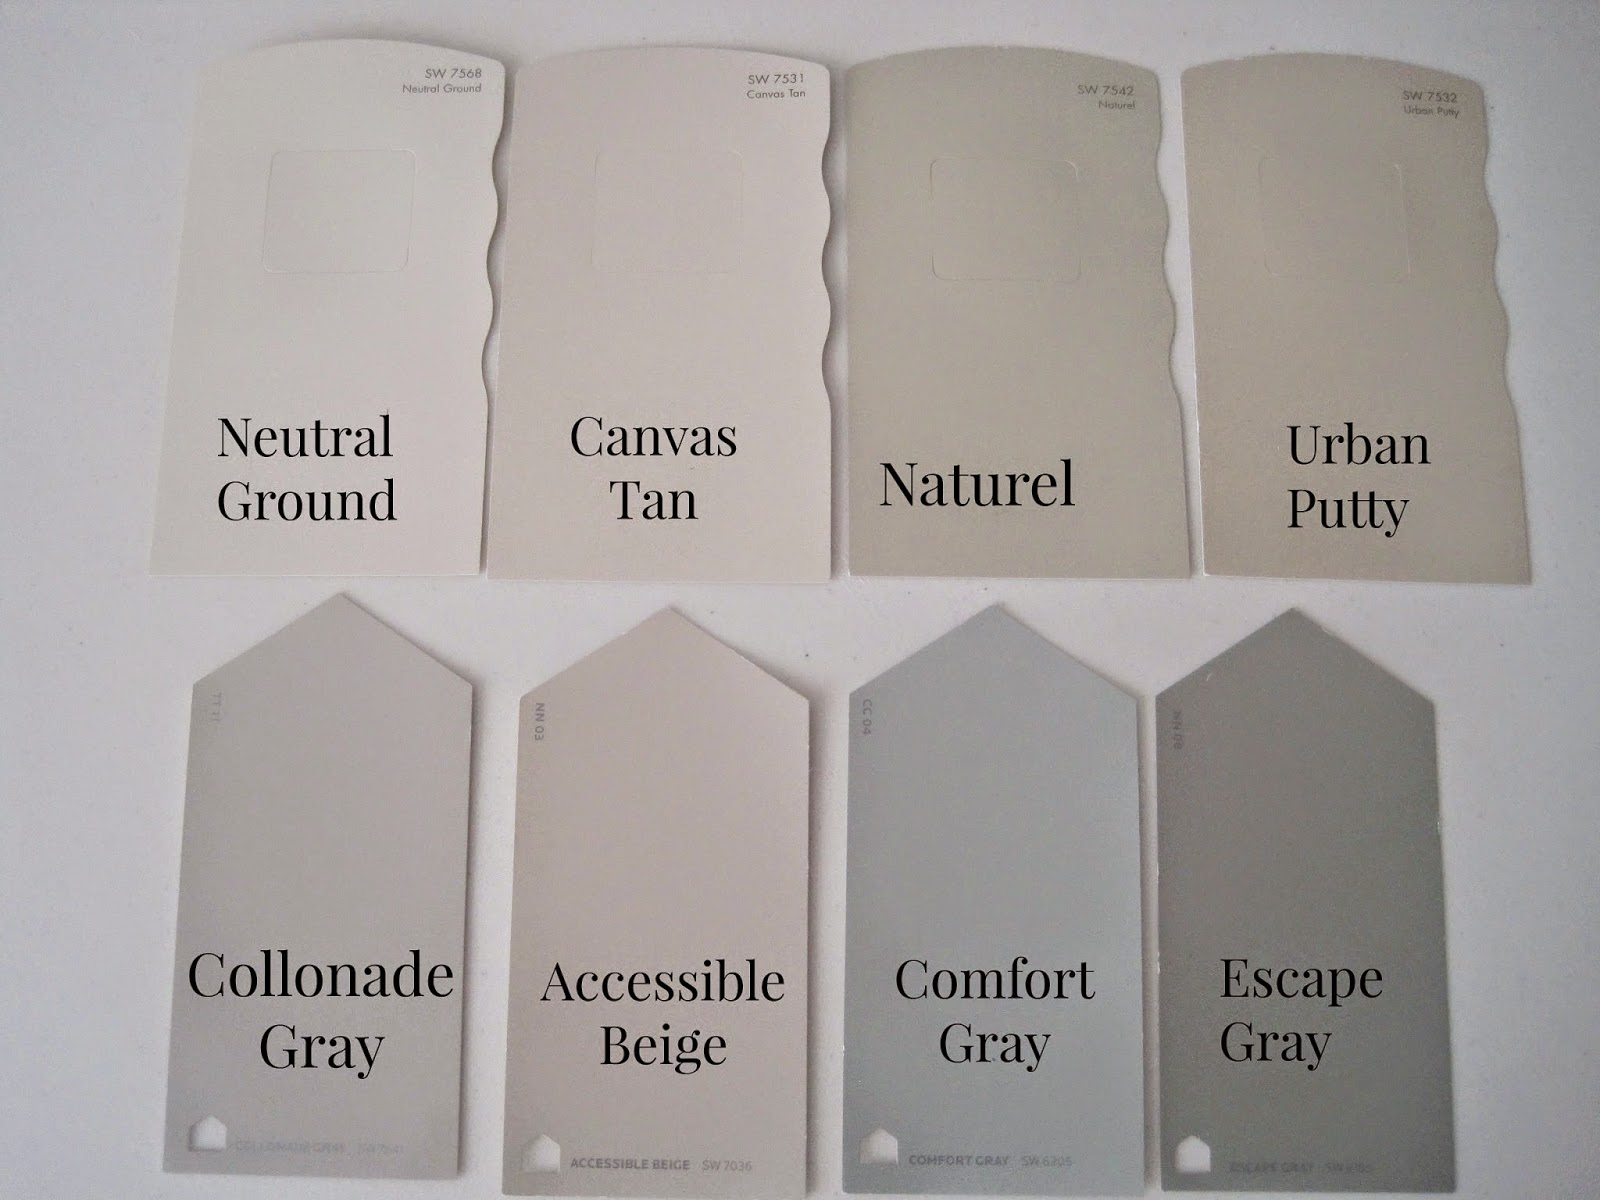 Decorated chaos a new year and exploring new colors for Sherwin williams collonade gray exterior